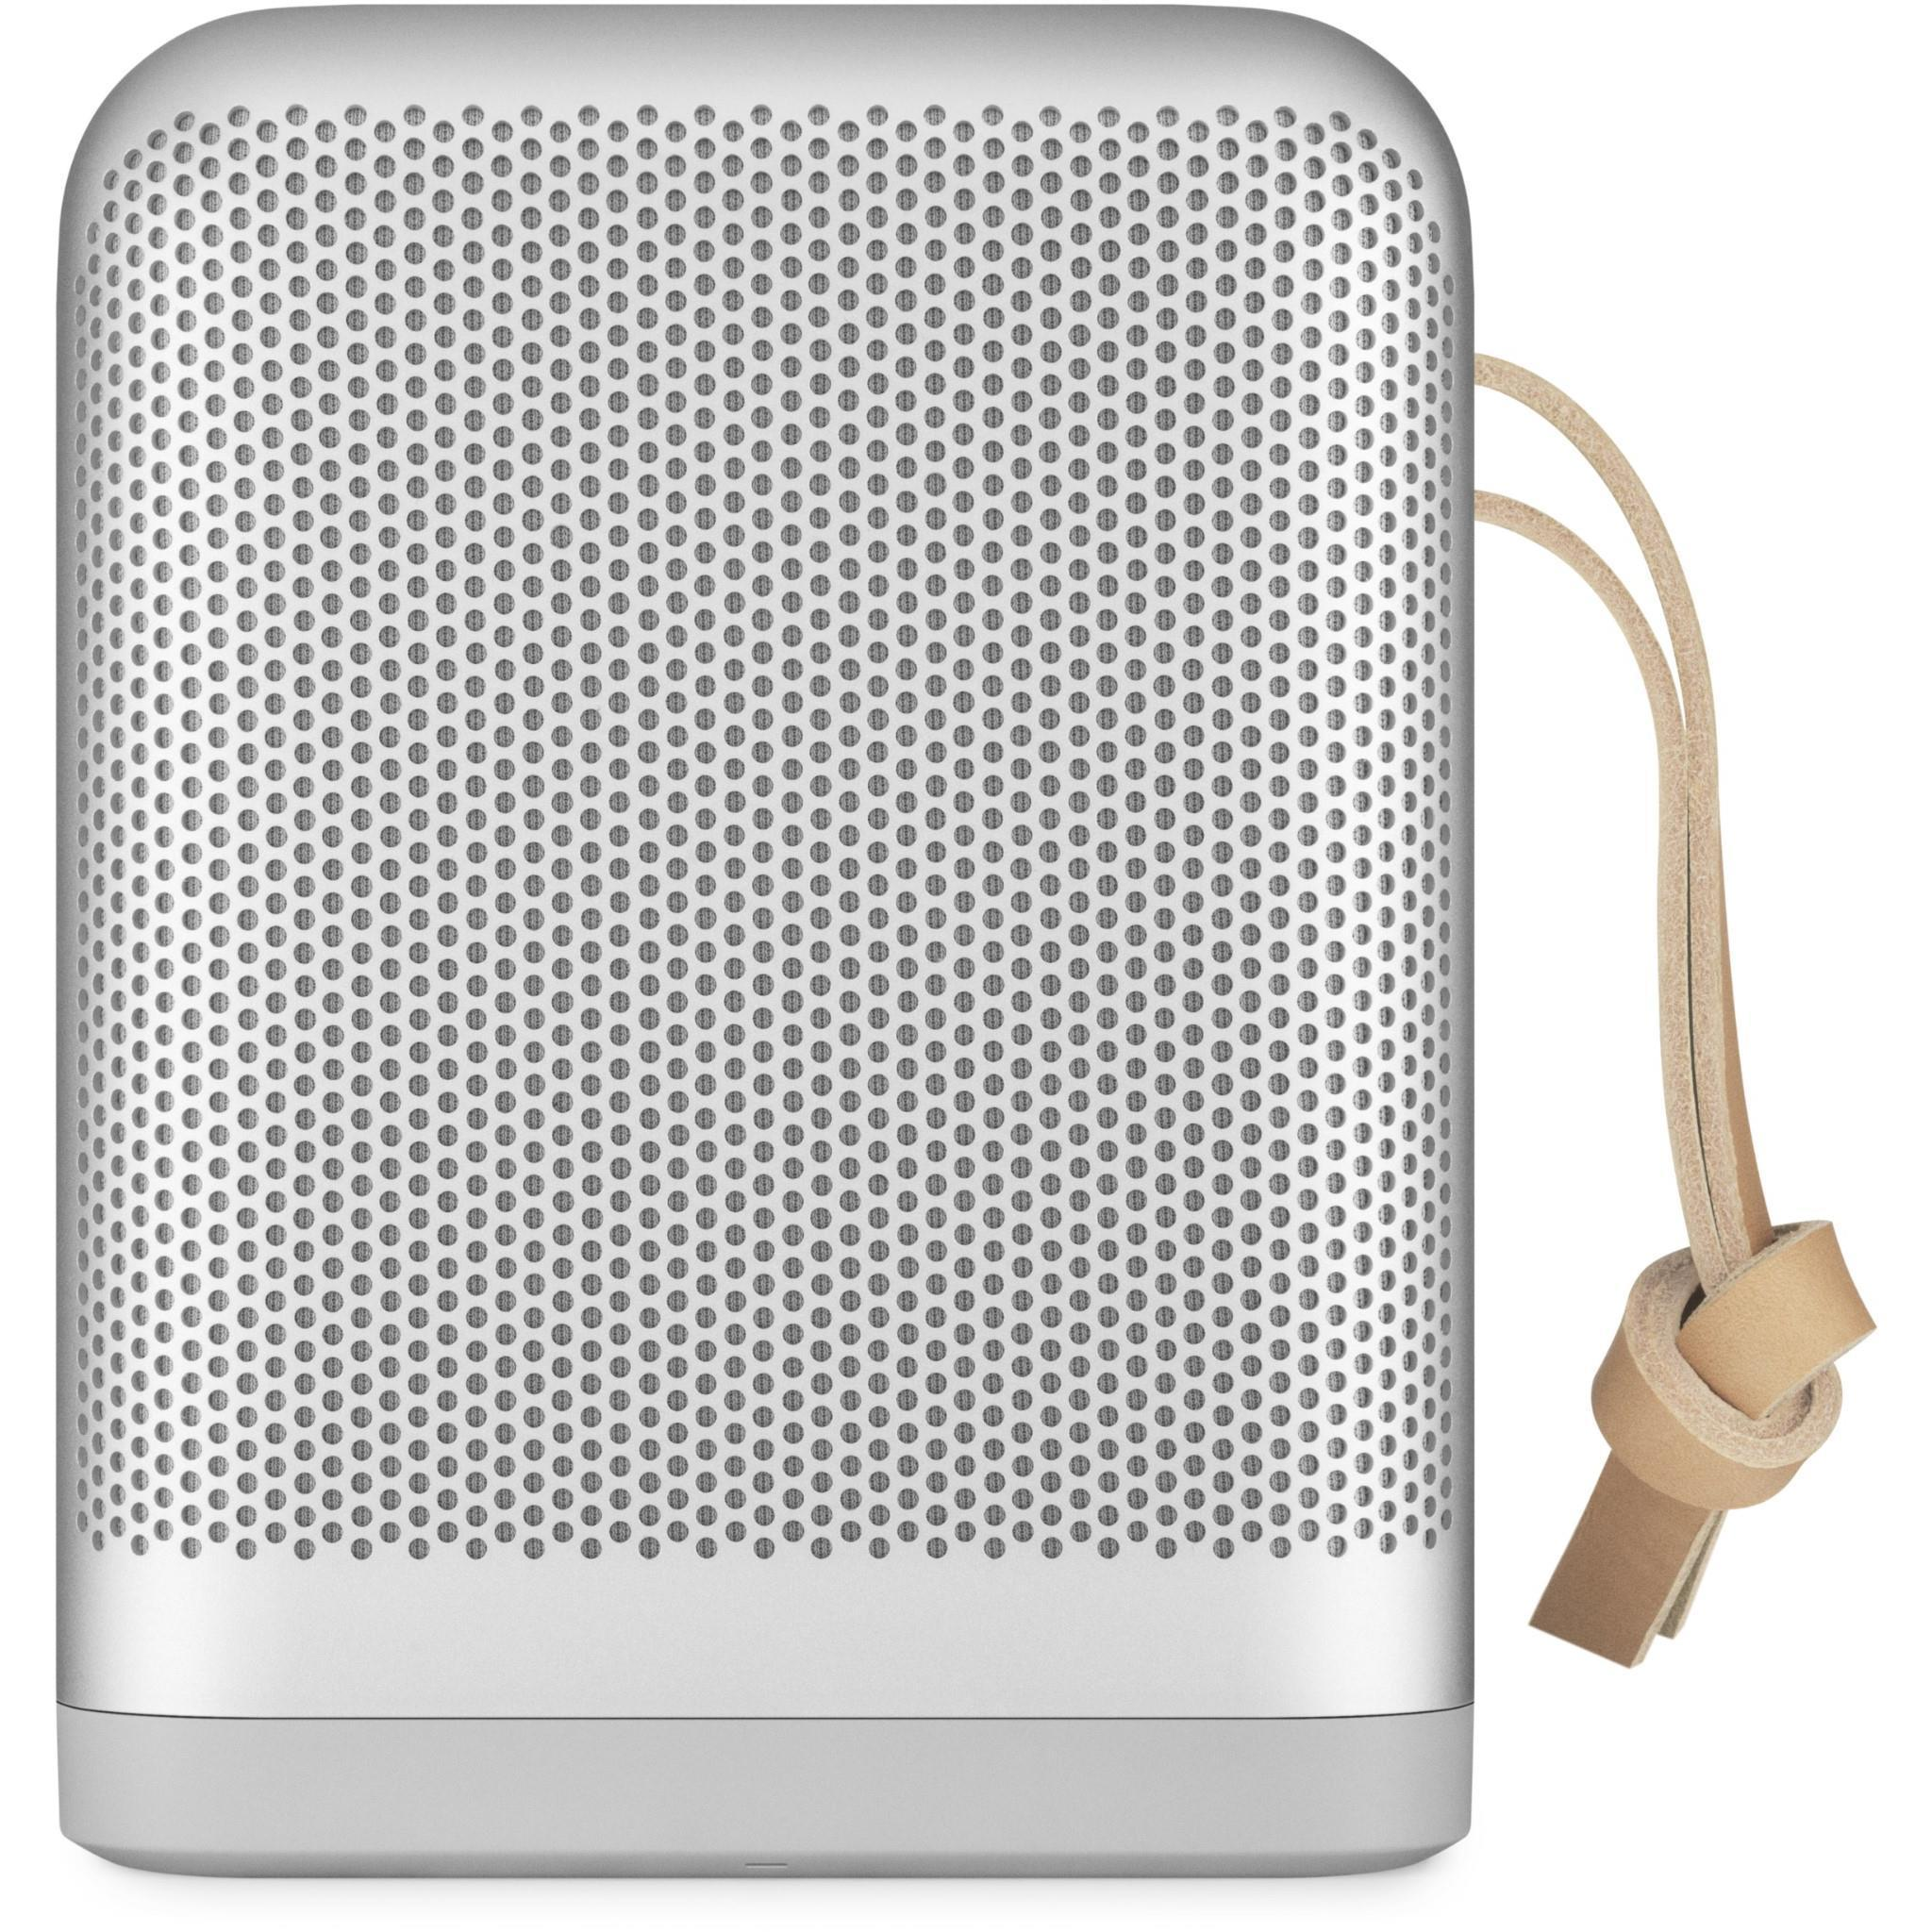 B&O Beoplay P6 Powerful and Portable Wireless Bluetooth Speaker (Natural)